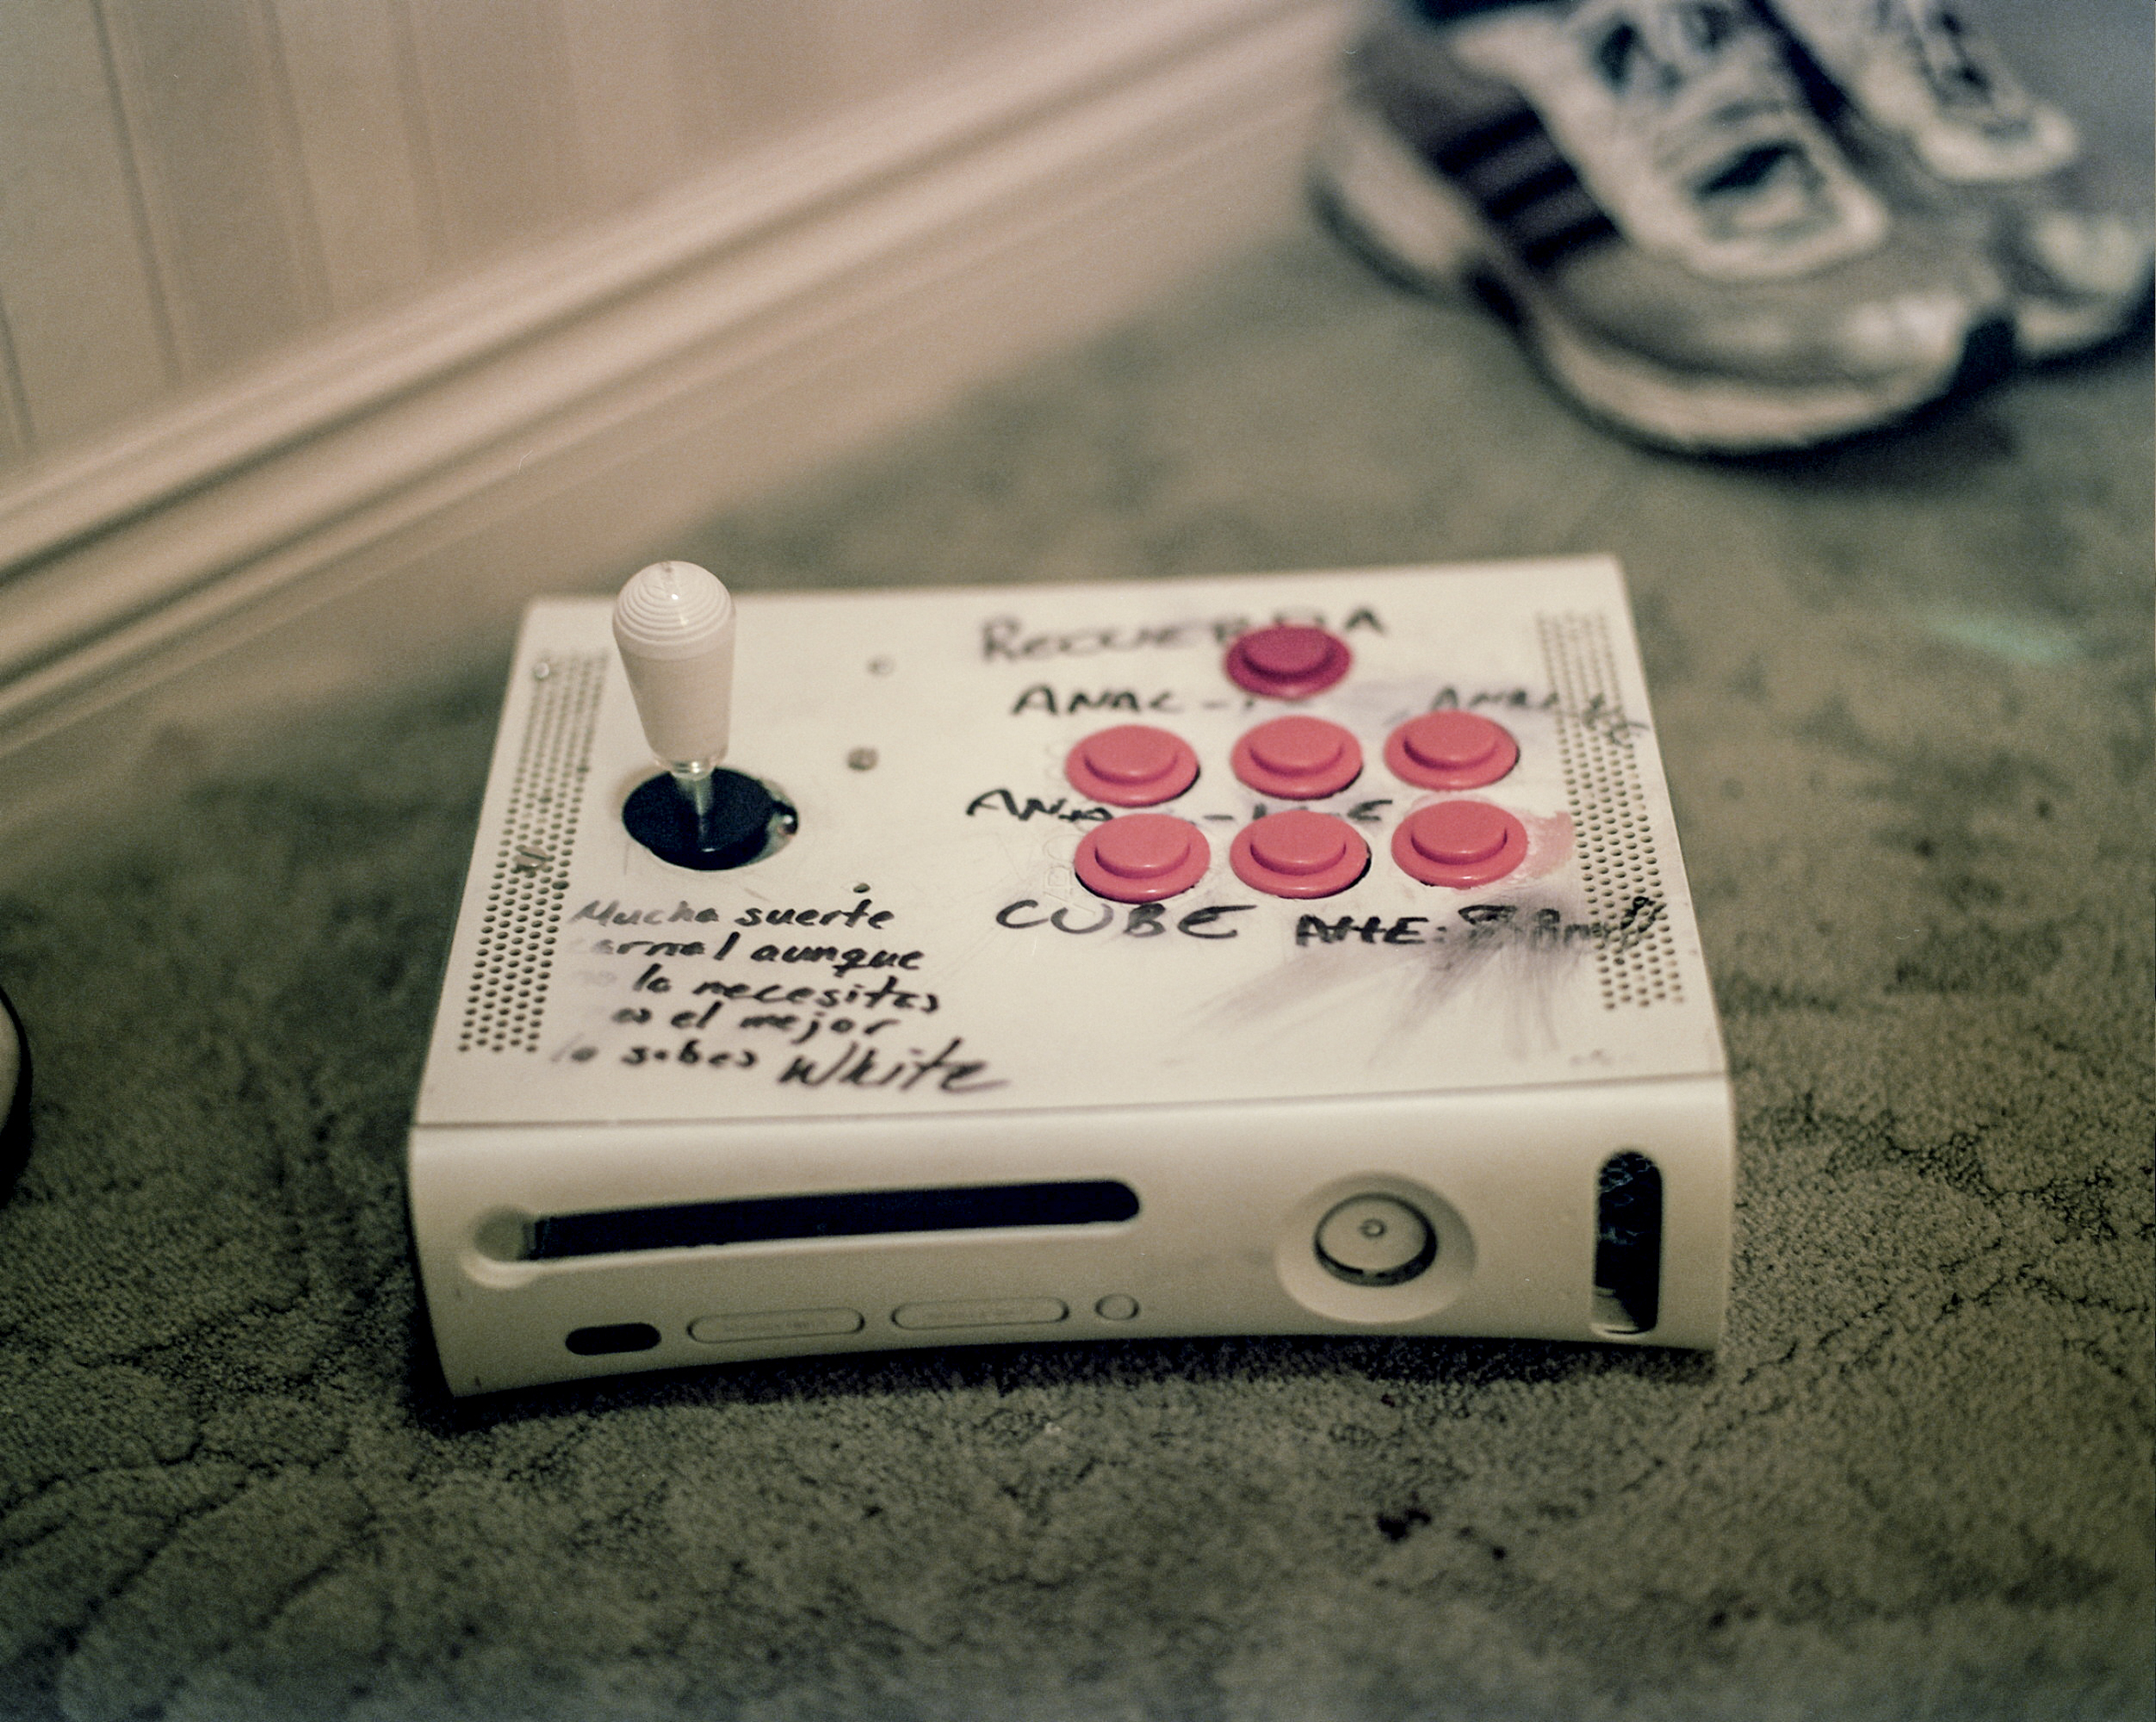 "Cesar ""TA Frutsy"" Garcia's, 27, home-made arcade stick sits on a hotel room floor at the Paris Hotel in Las Vegas, Nevada at the EVO competive gaming tournament. Cesar, a noteworthy Mexican player, came to prominence for his unorthodox playstyle and home-made arcade sticks. This stick is made out of an old X-Box 360."